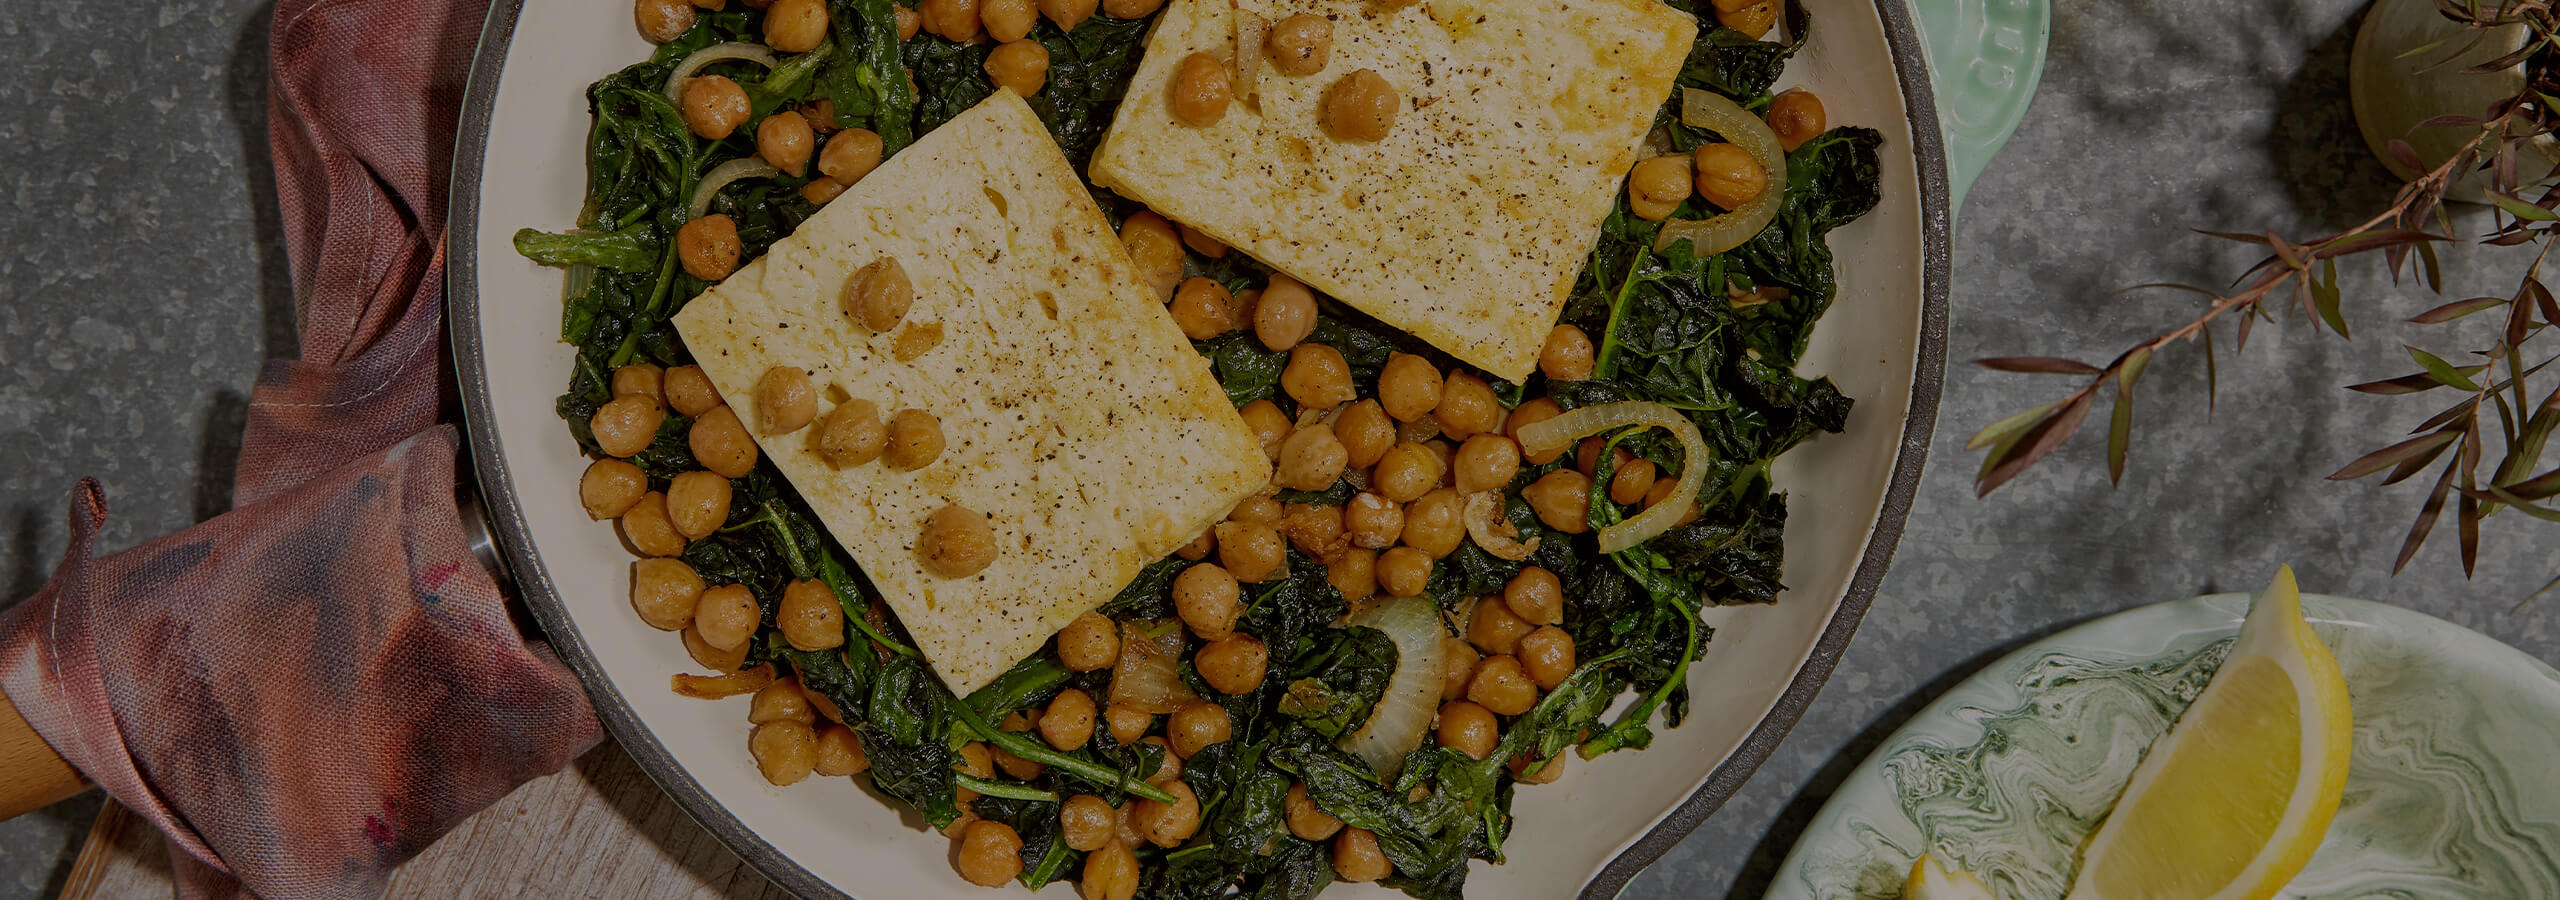 Baked Feta with Chickpeas